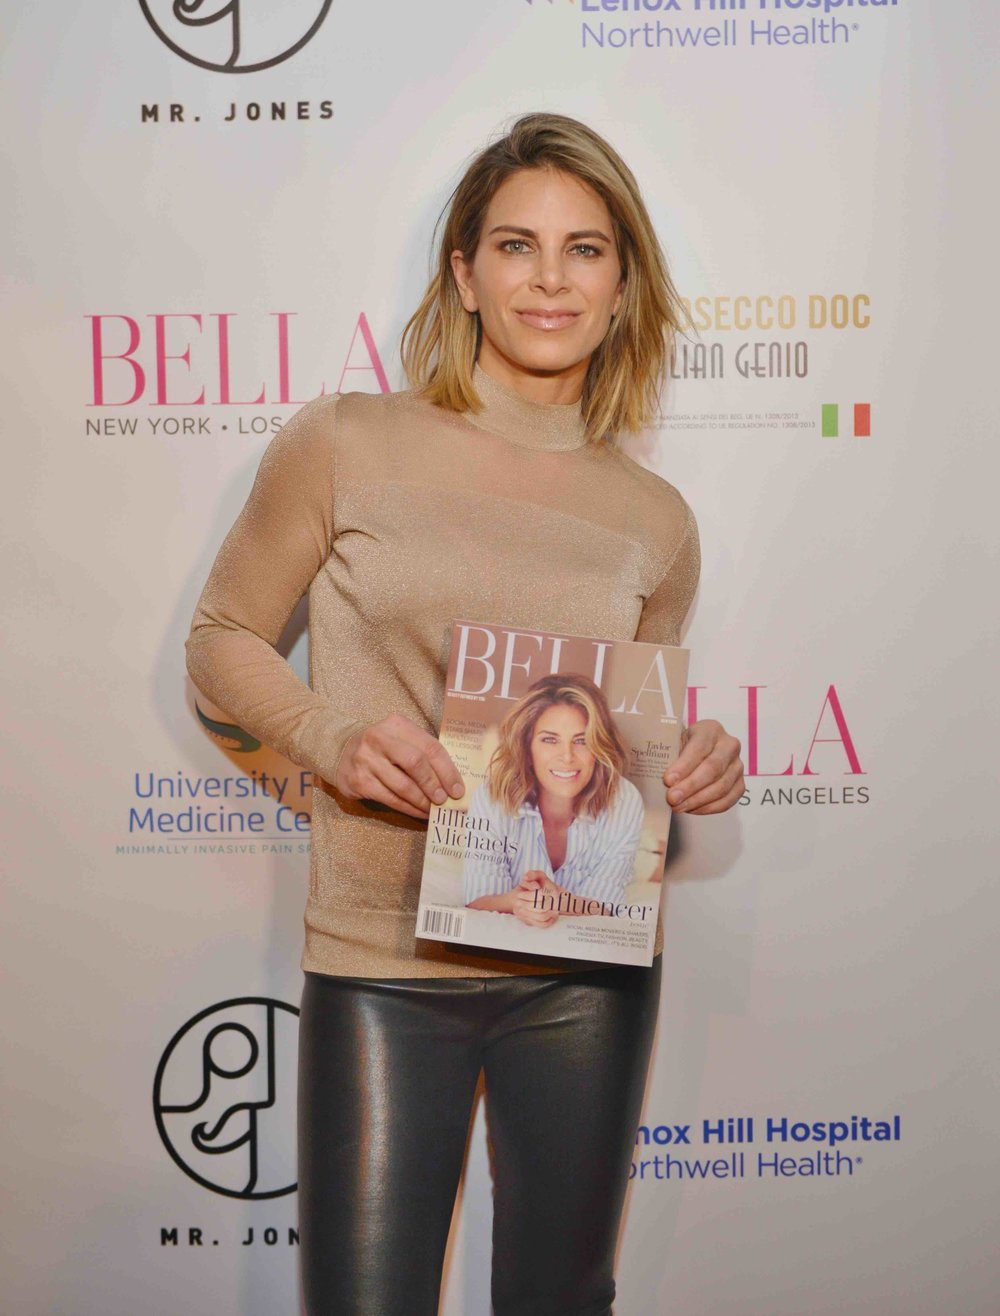 BELLA Jillian Michaels.jpg